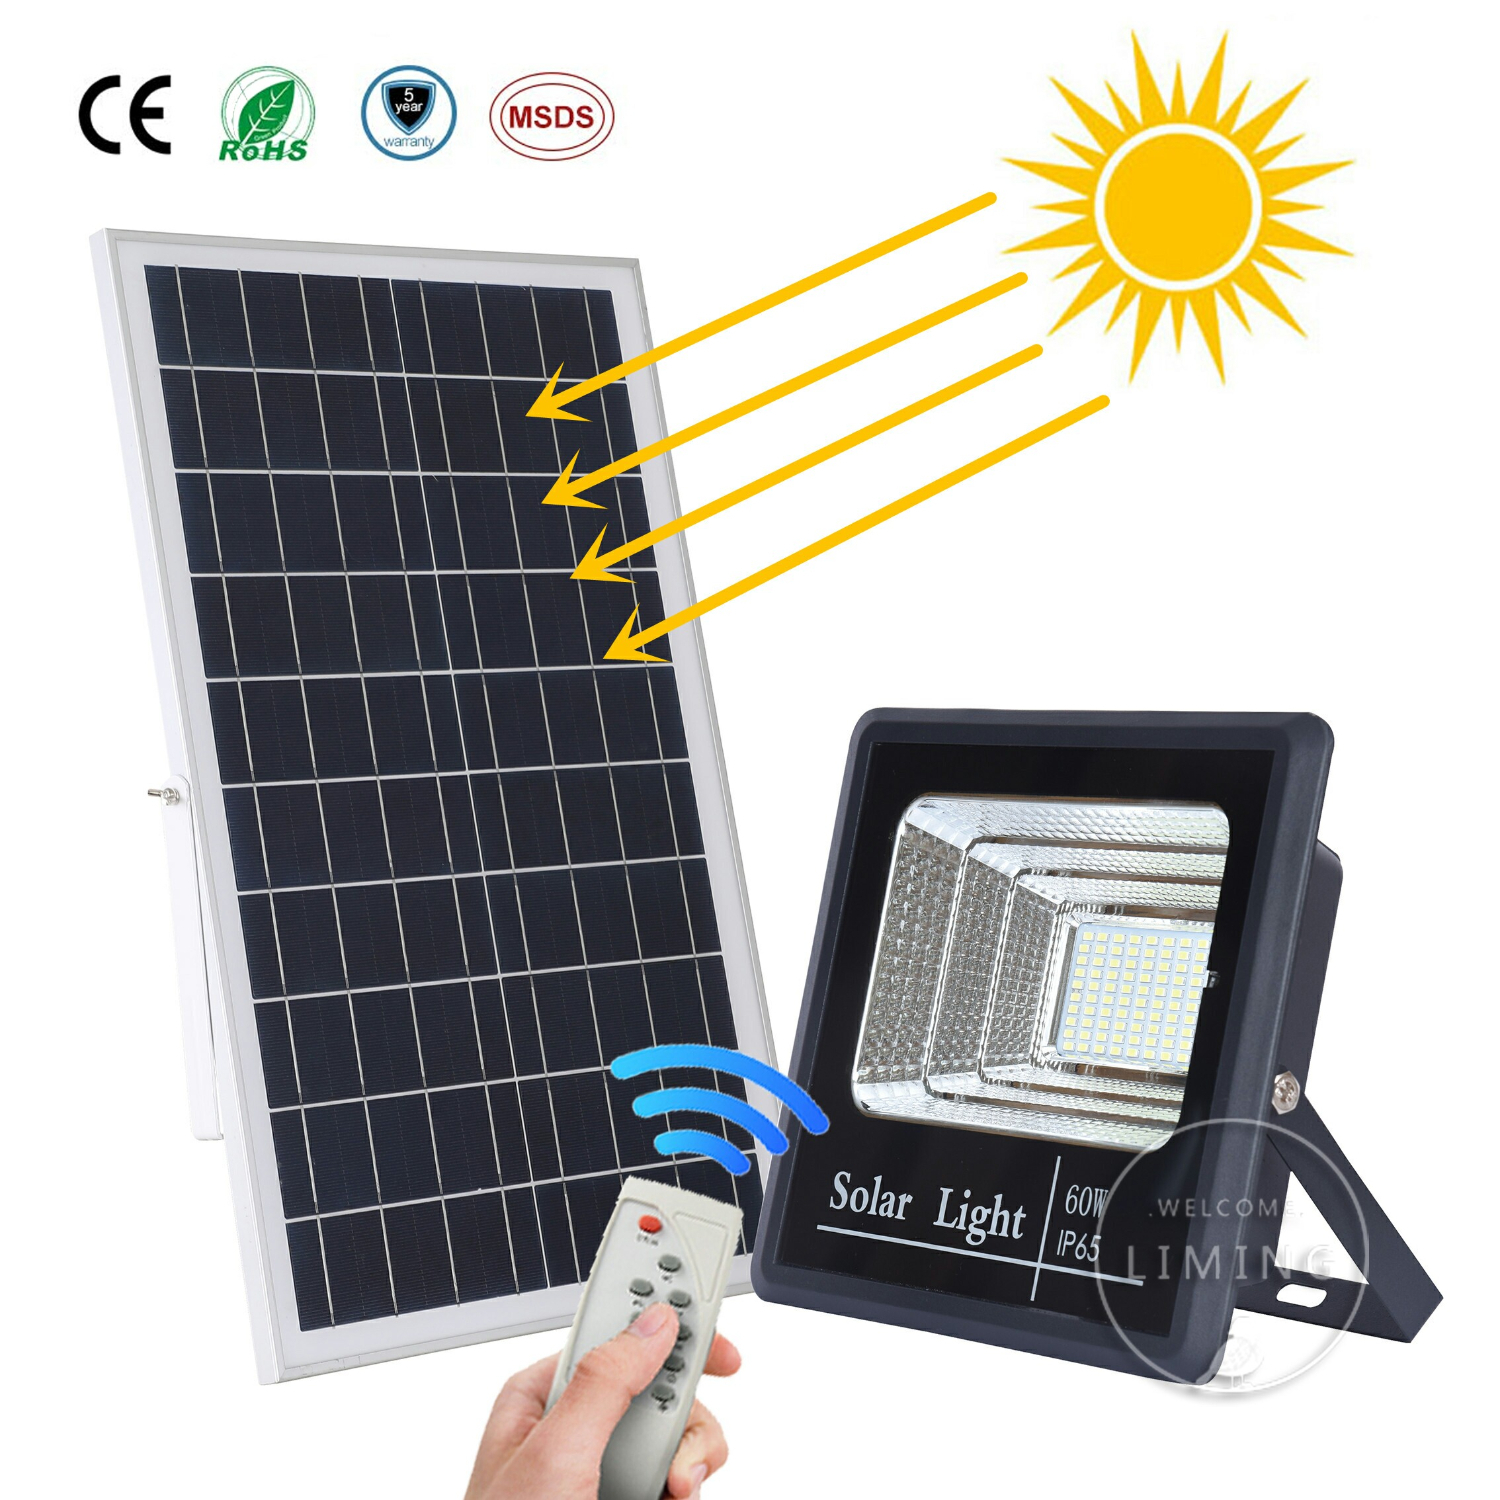 Led Flood Light Outdoor Solar Floodlight Spotlight Powered Emergency Security Wall Lamps Reflector Ip65 Waterproof Garden Lawn